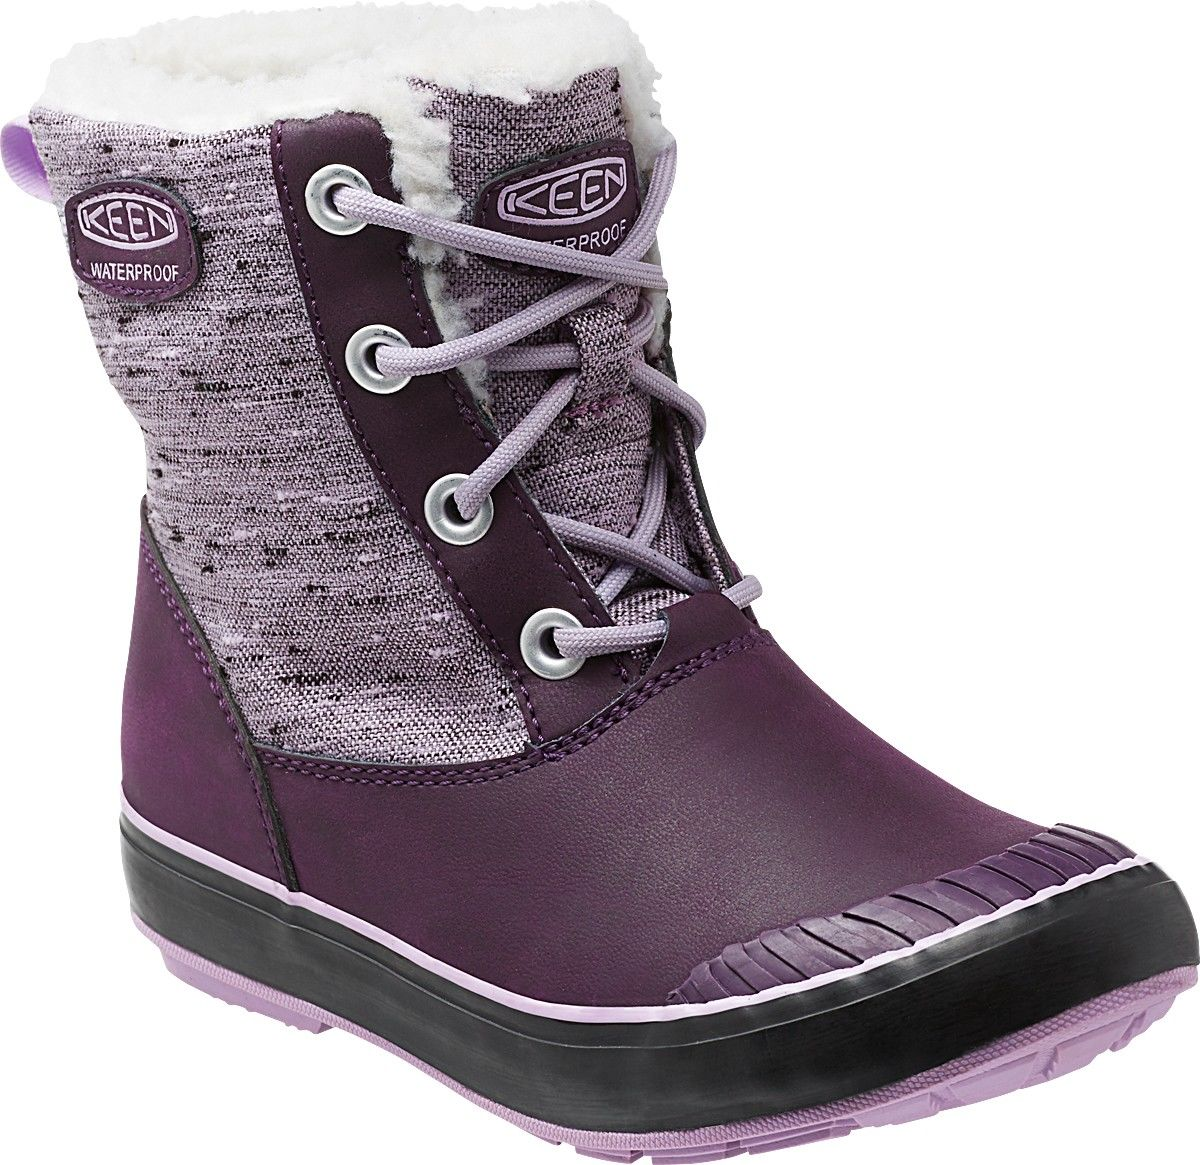 Keen Kids Elsa Boot Waterproof | Größe US 1 / UK 13  / EU 32-33,US 2 / UK 1/ E